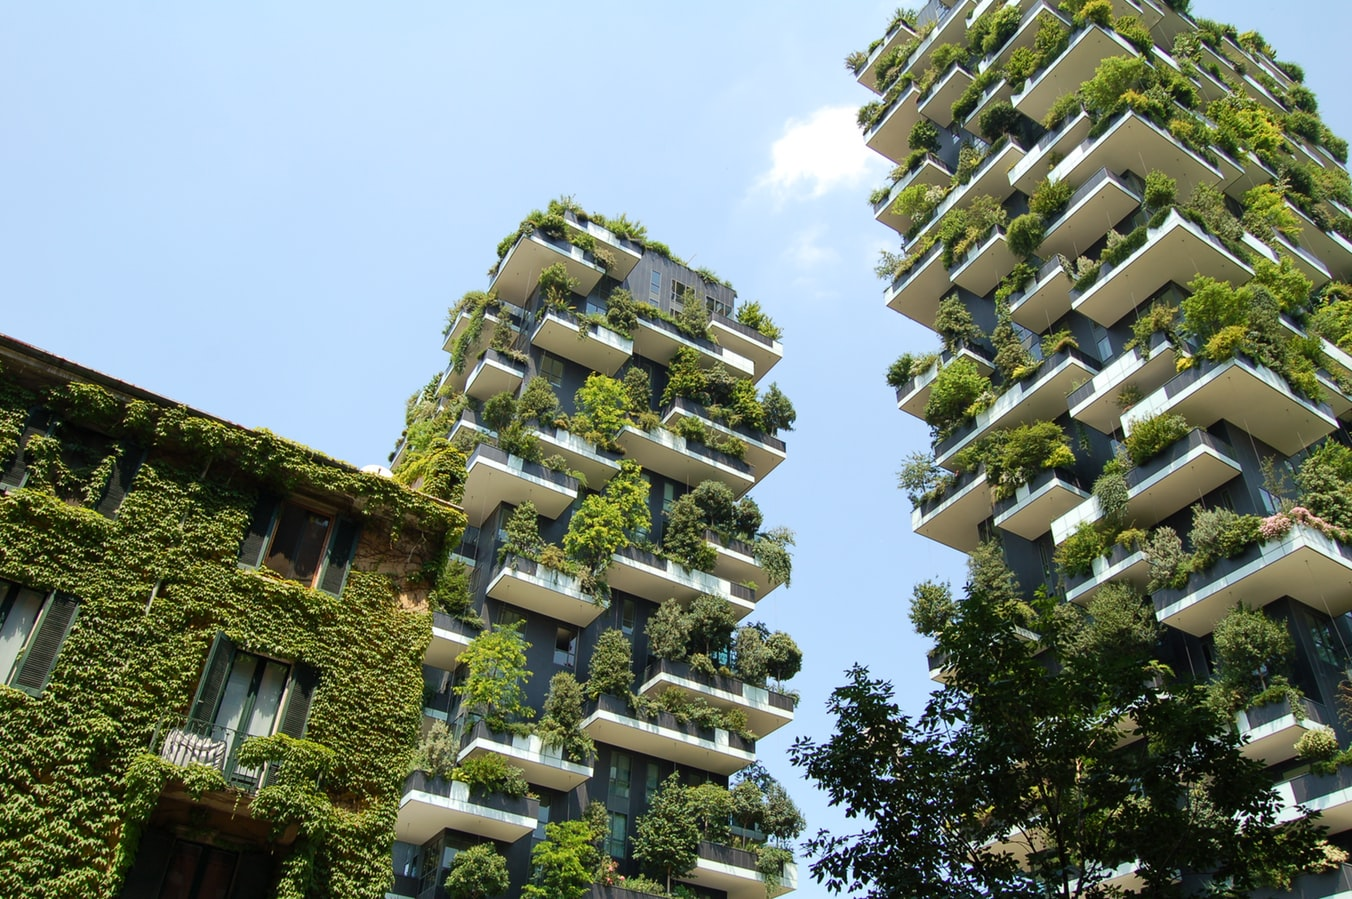 Two residential towers covered with trees